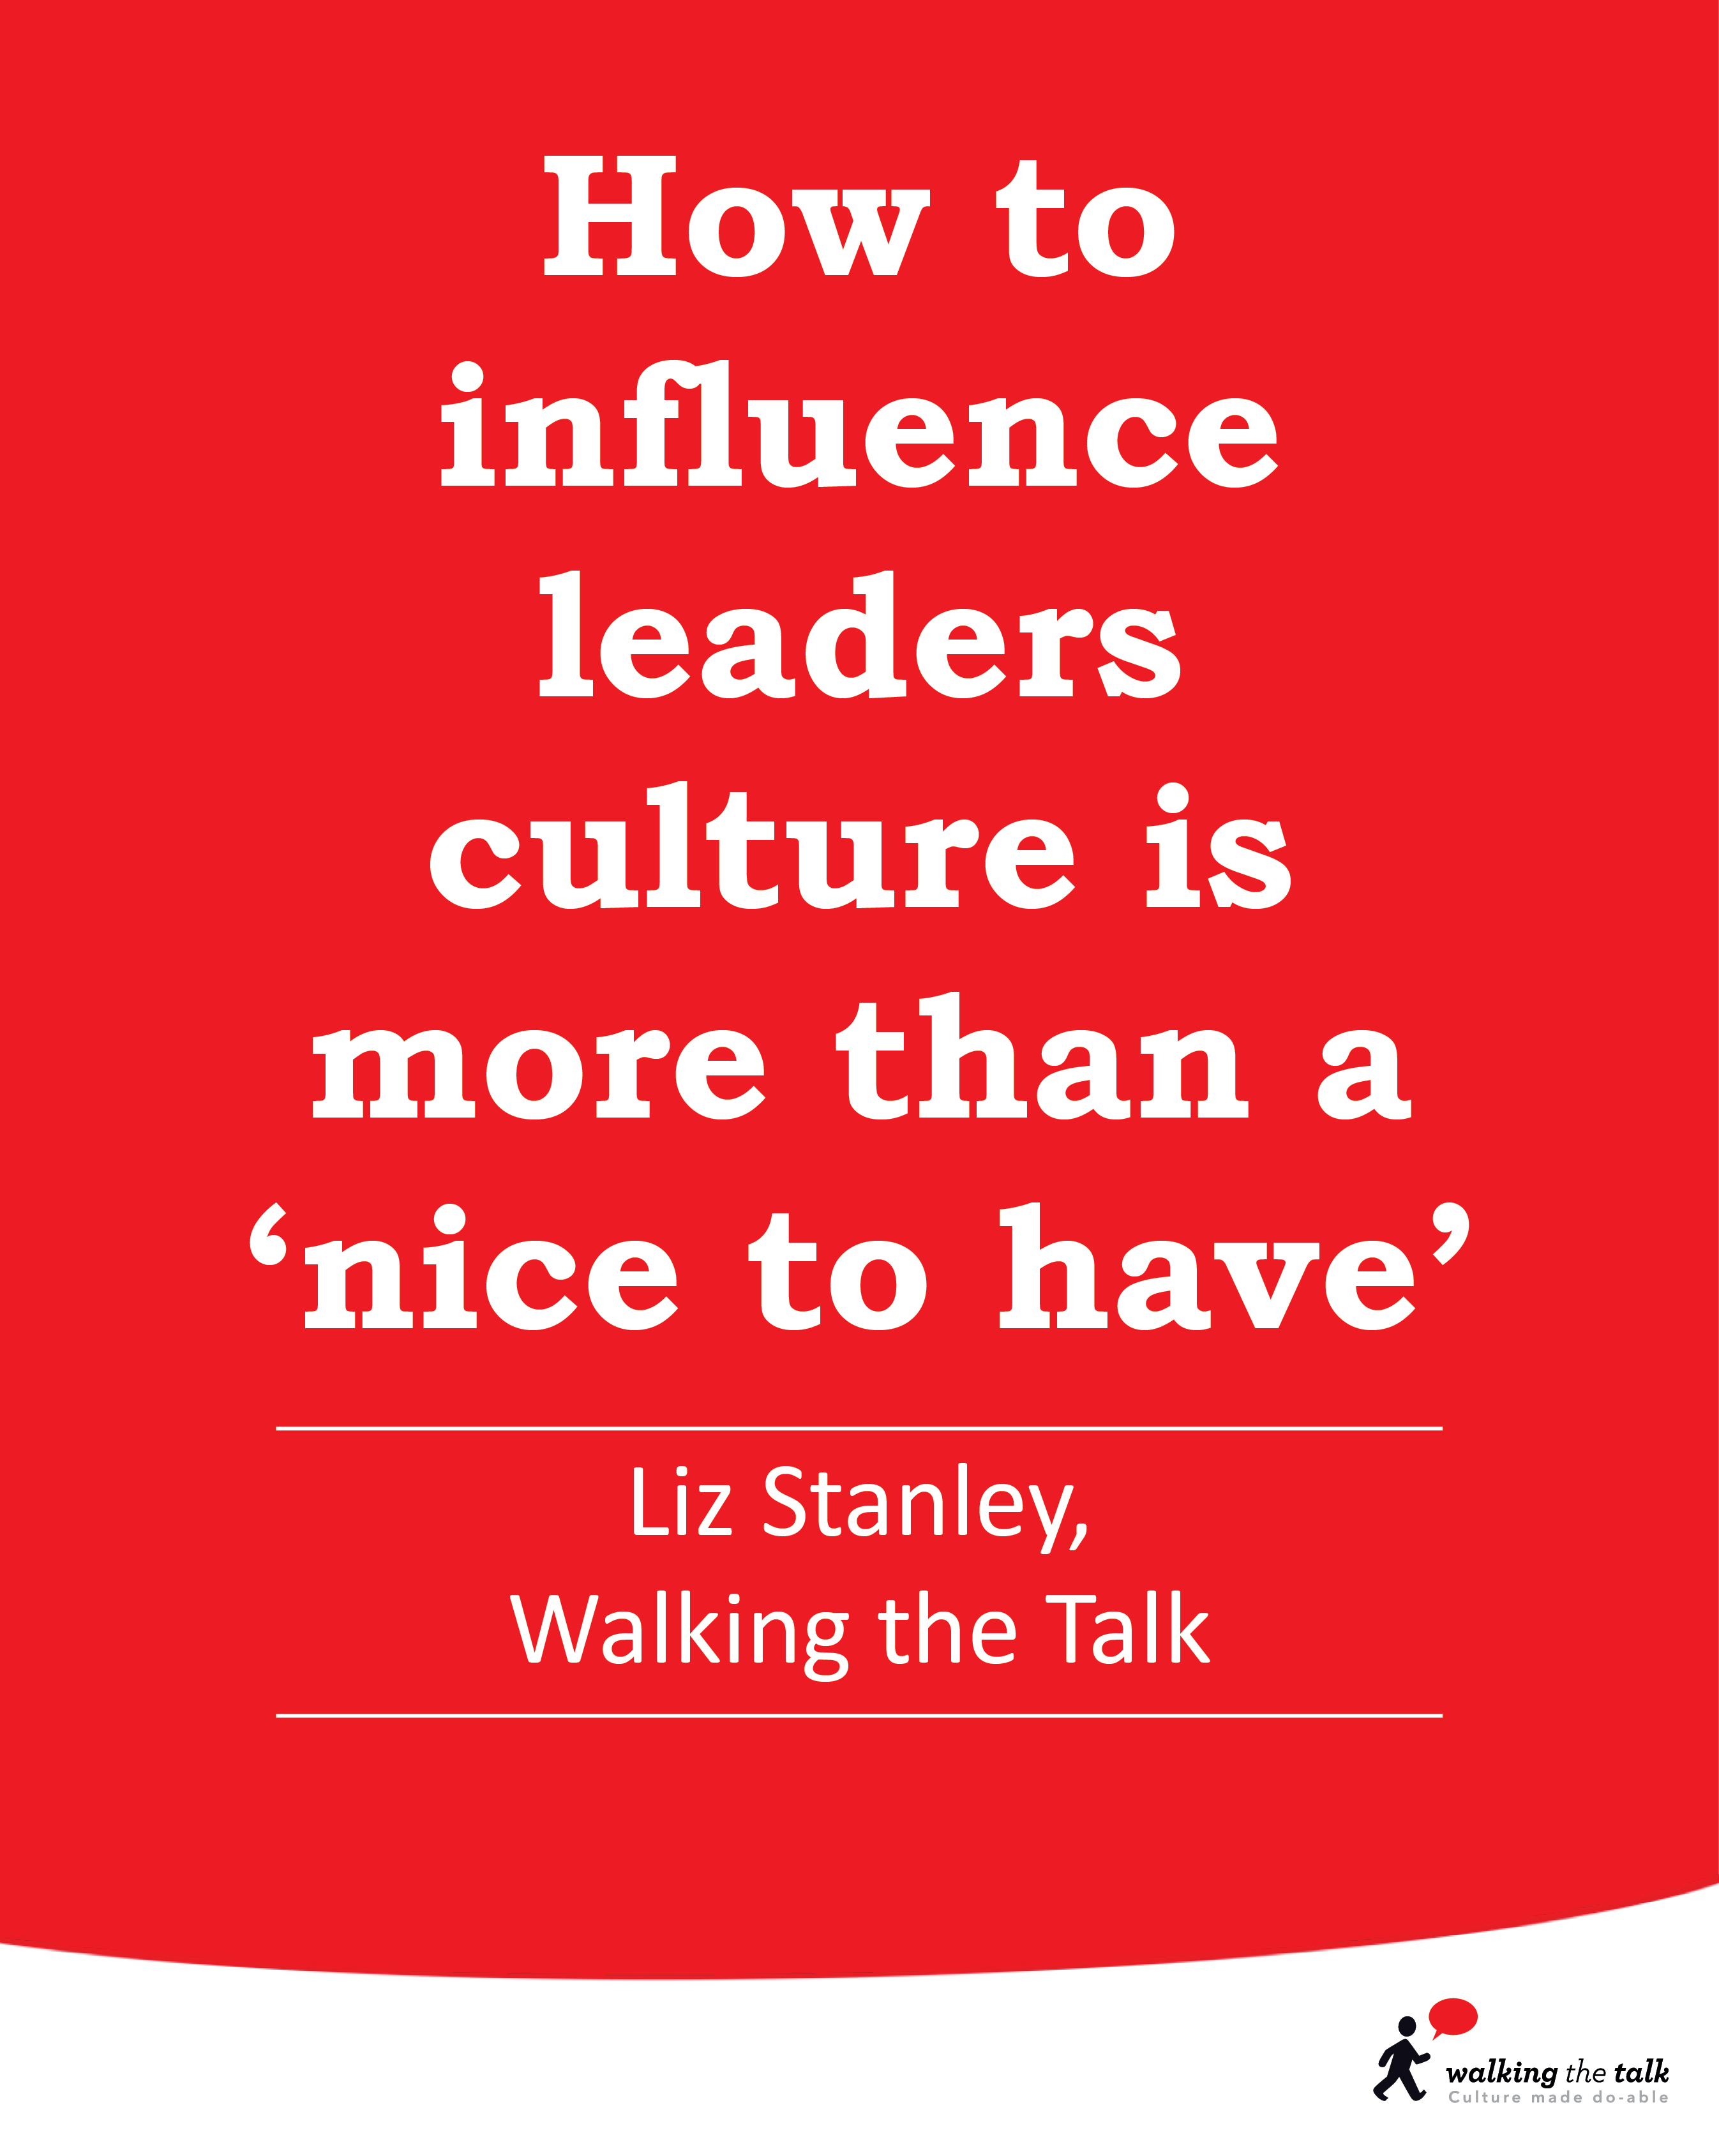 HOW TO INFLUENCE LEADERS video